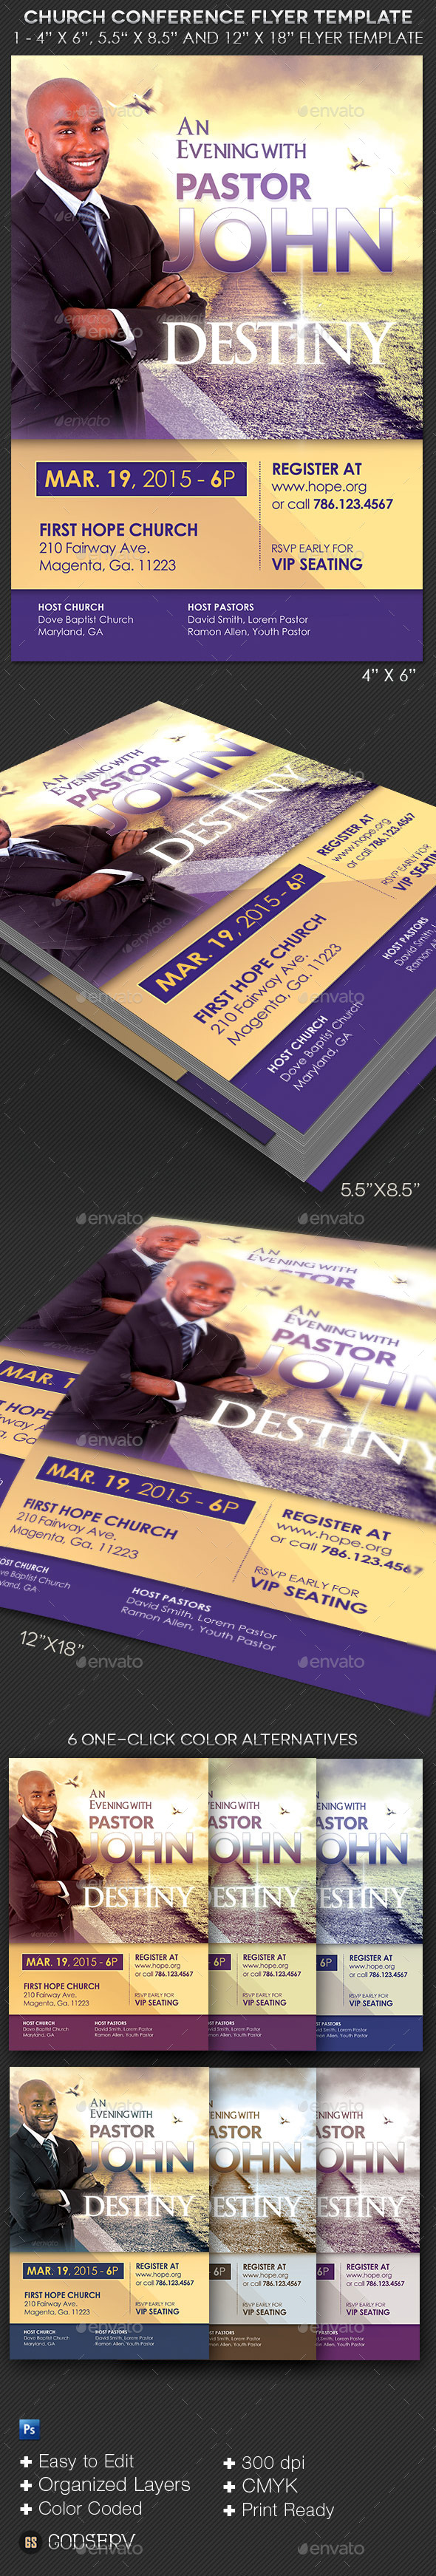 Church Conference Flyer Poster Template - Church Flyers